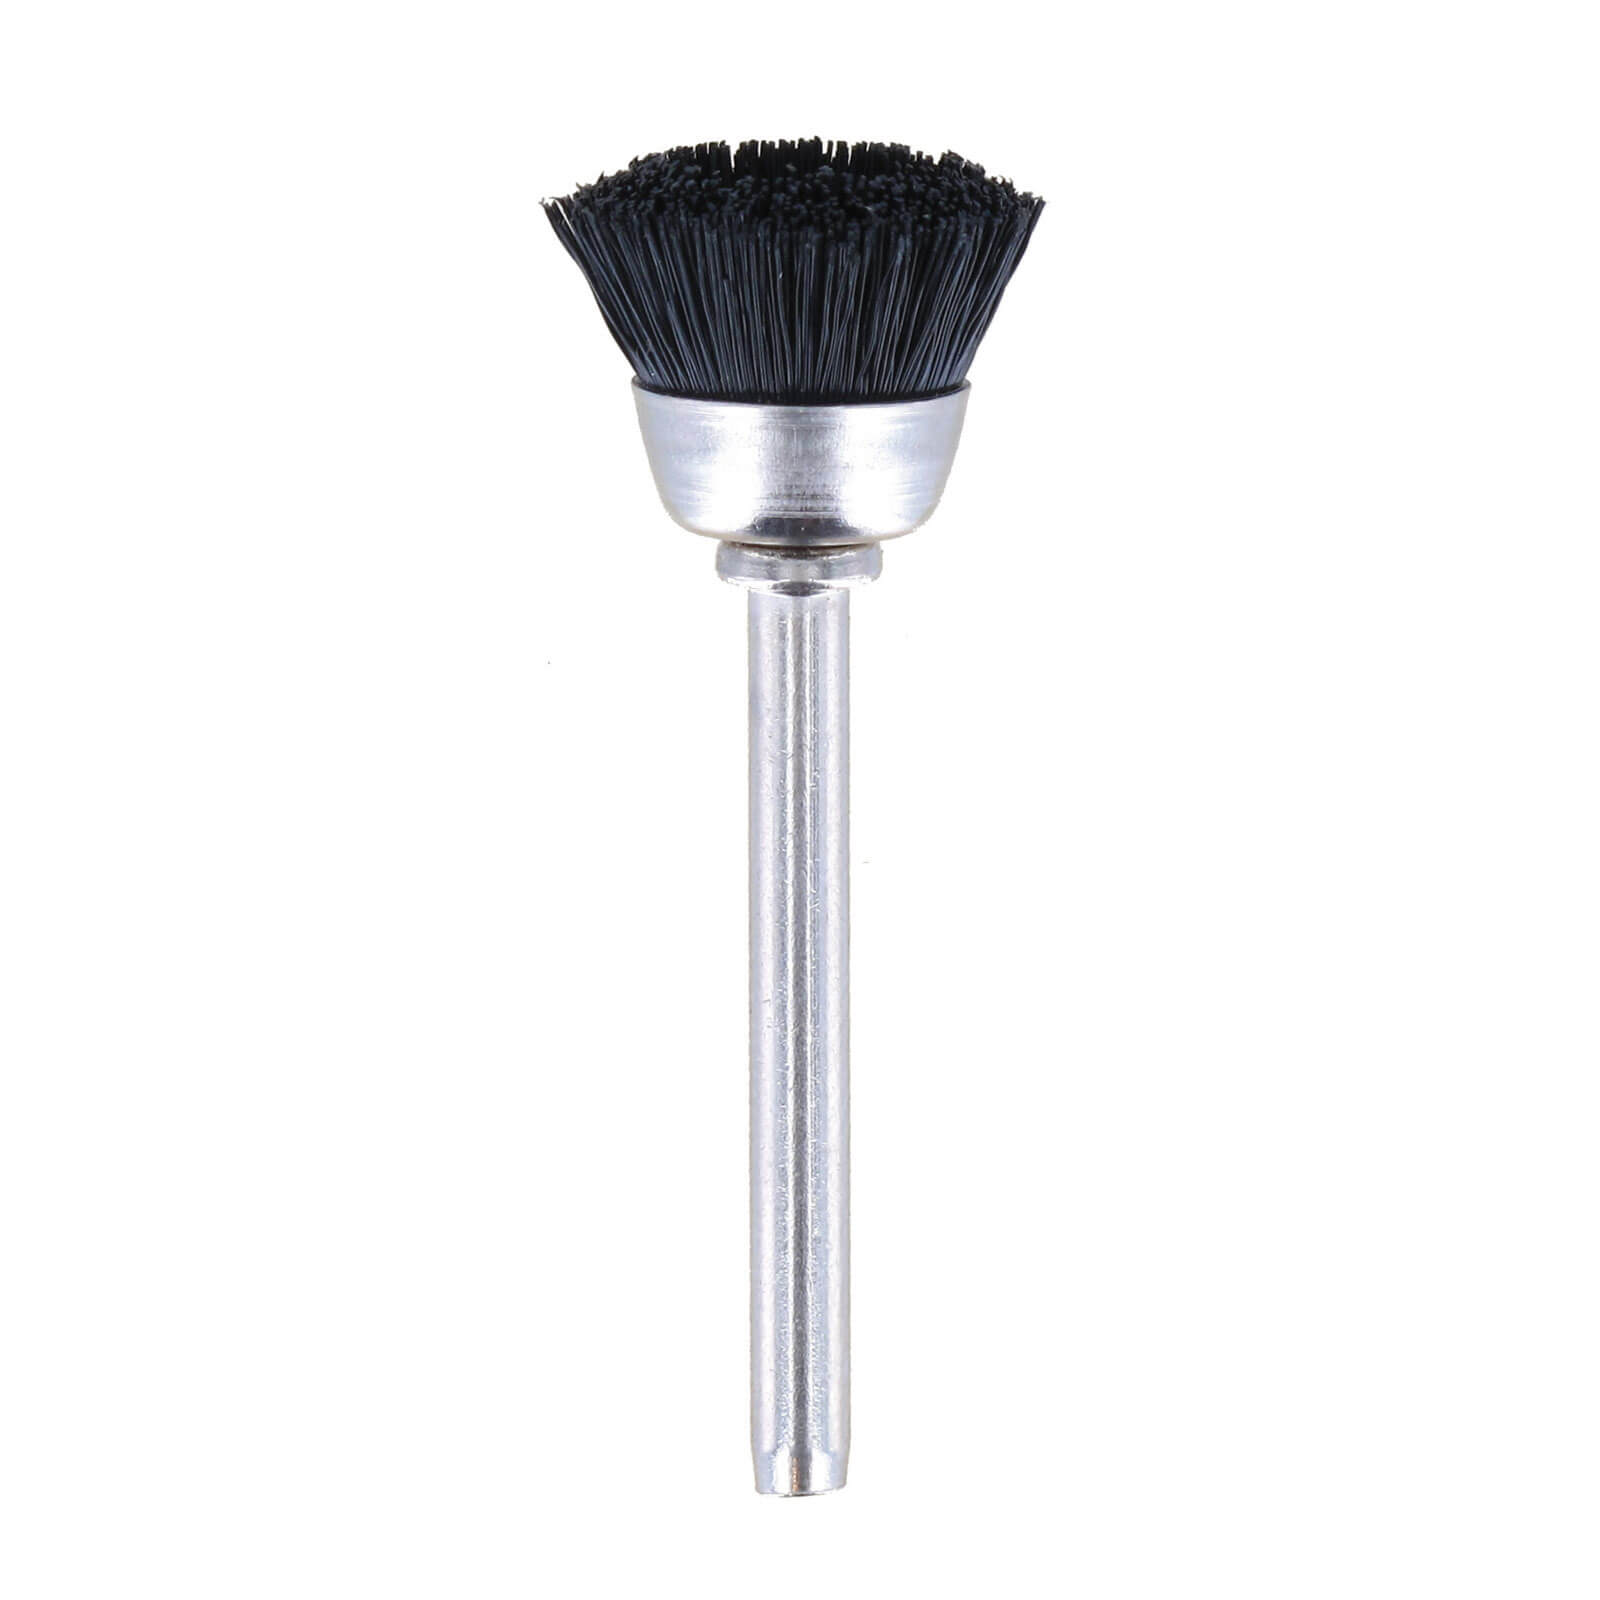 Image of Dremel 404 Bristle Cup Brush 13mm Pack of 2